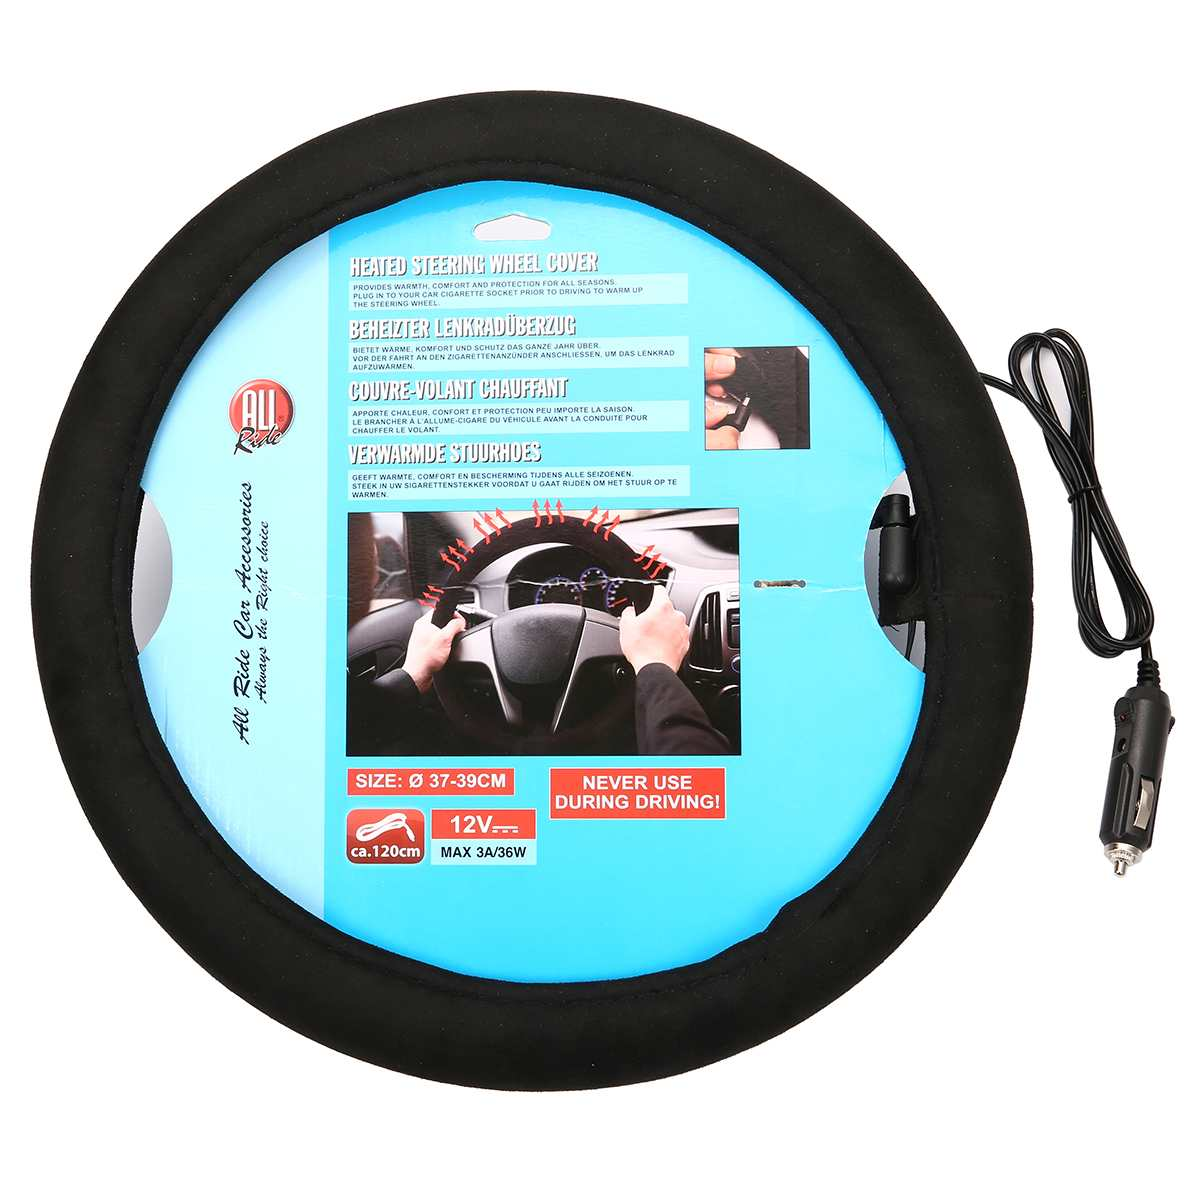 Universal 38cm Steering Covers Heater 12V Car Steering-Wheel Cover Winter Warm Comfortable Heated Heating Steering Wheel Cover